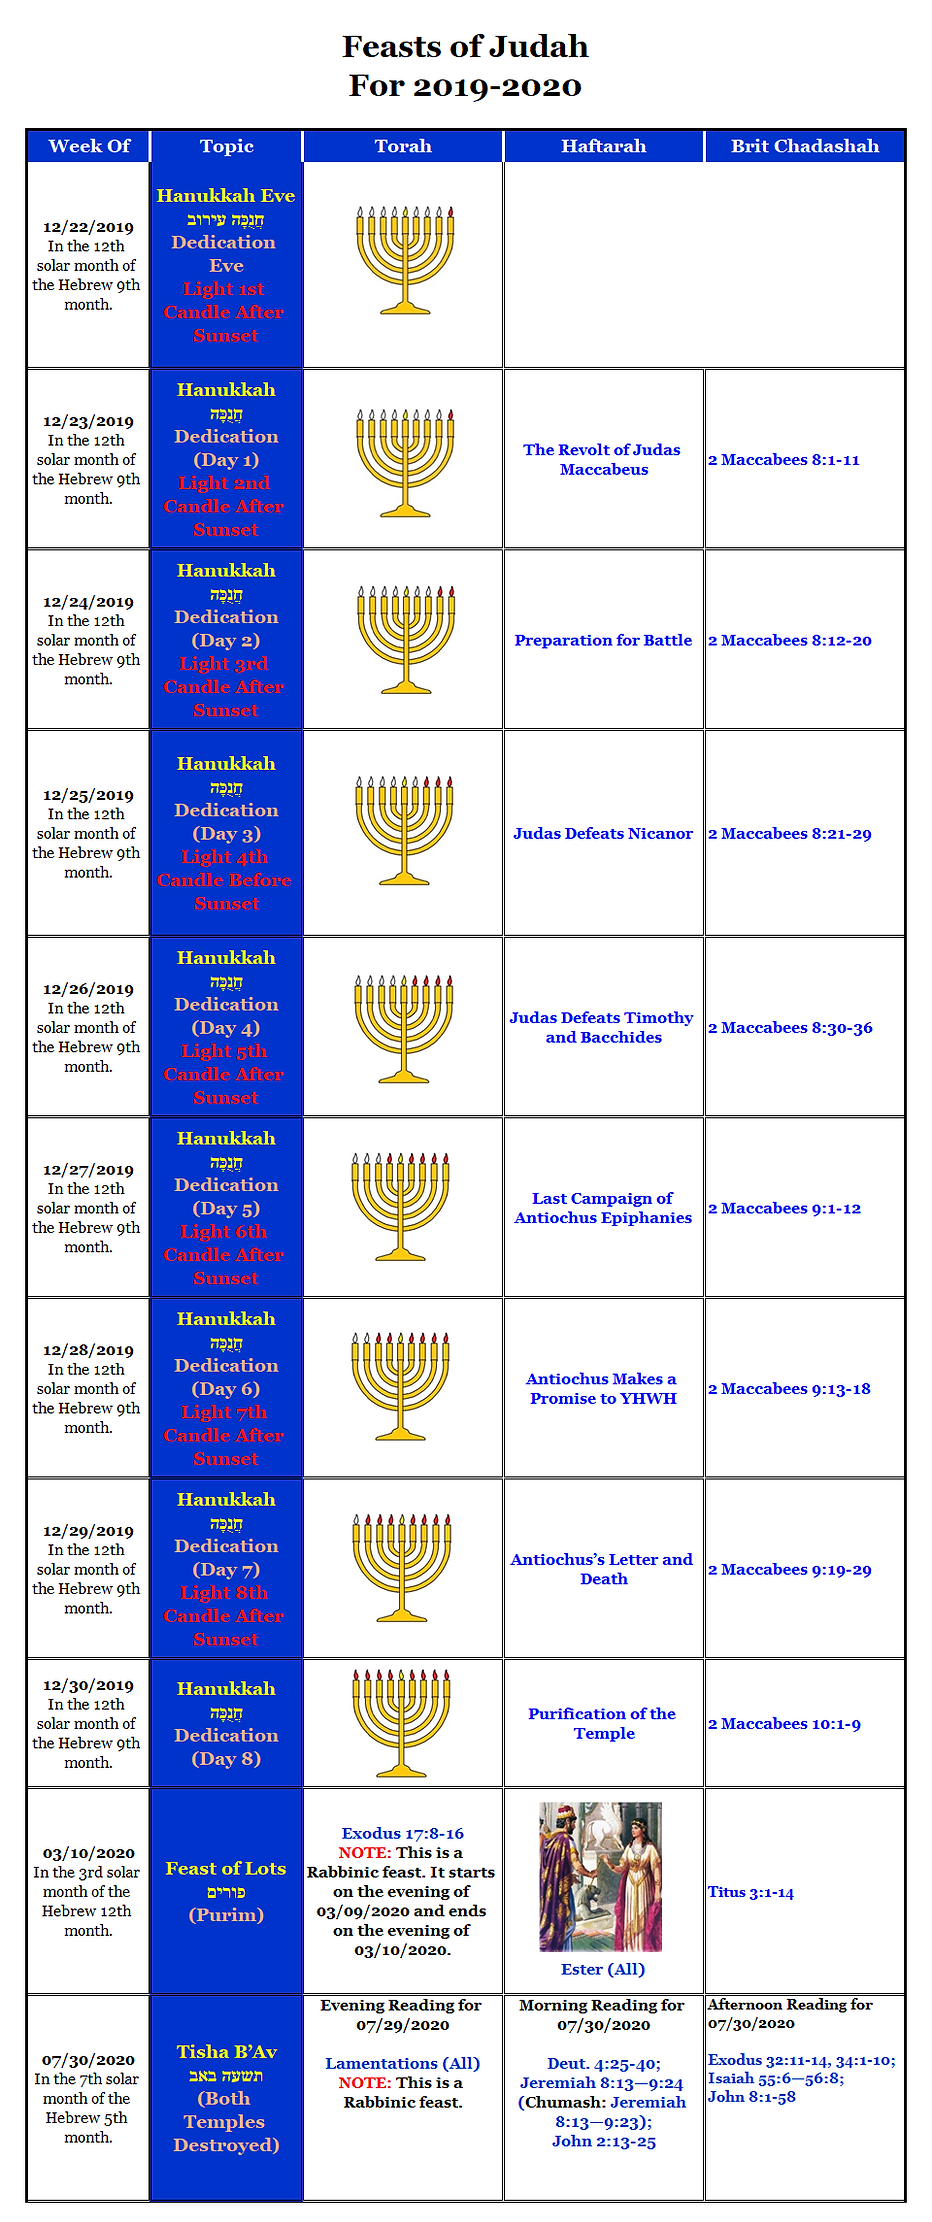 Feasts of Judah for 2019-2020.png